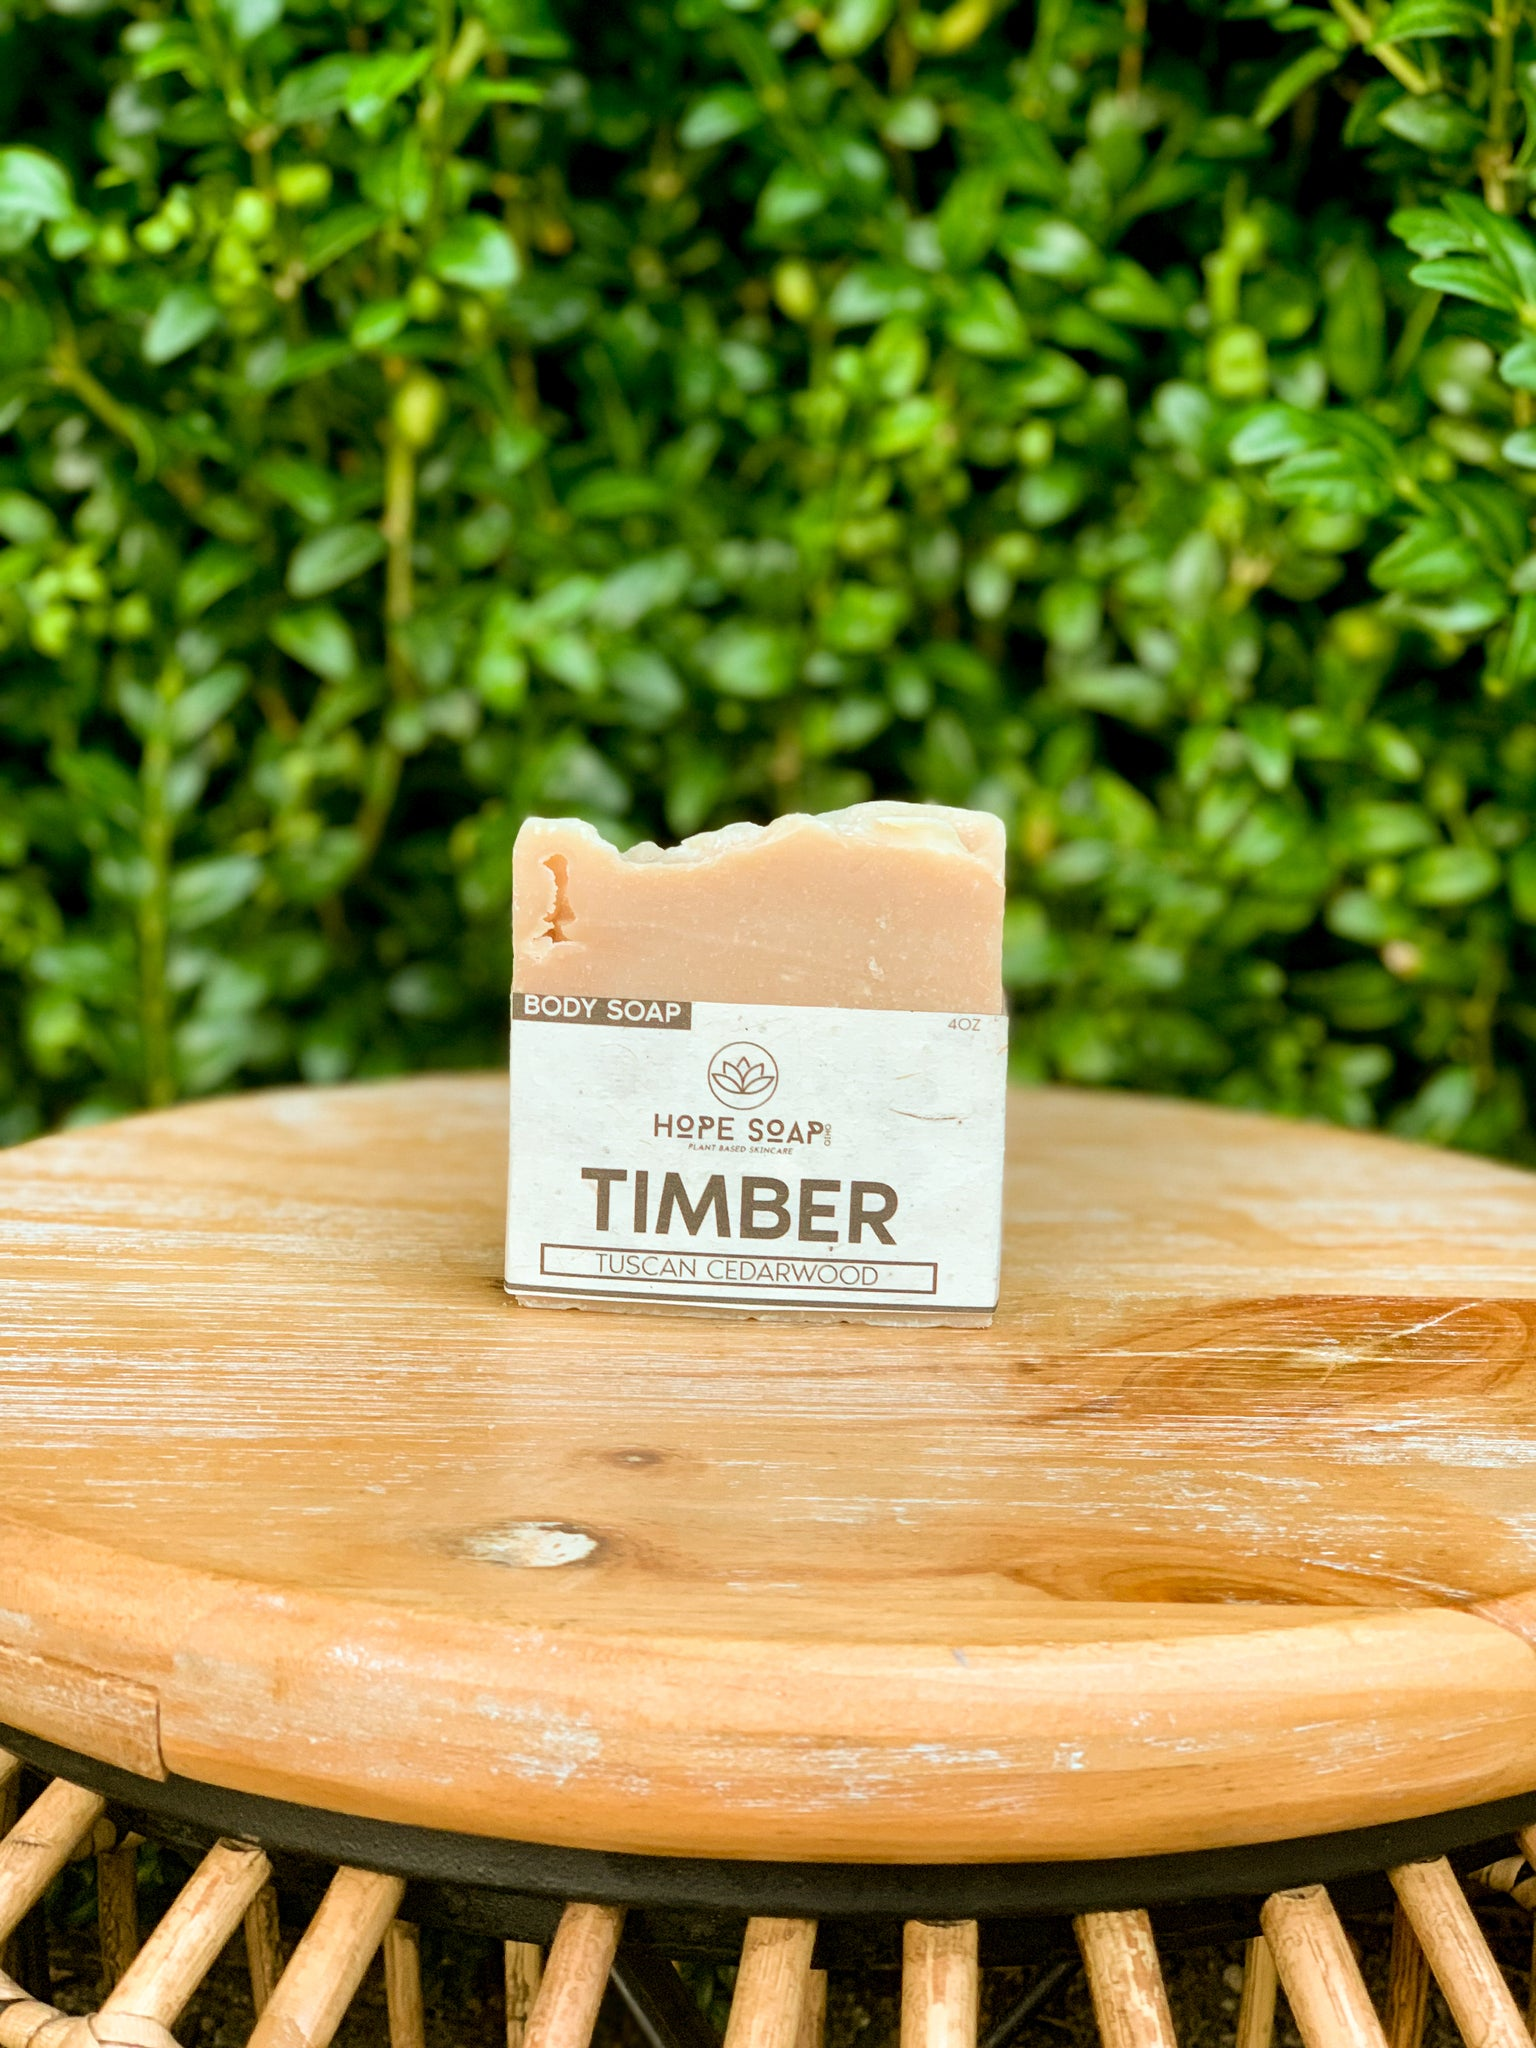 Timber Body Soap